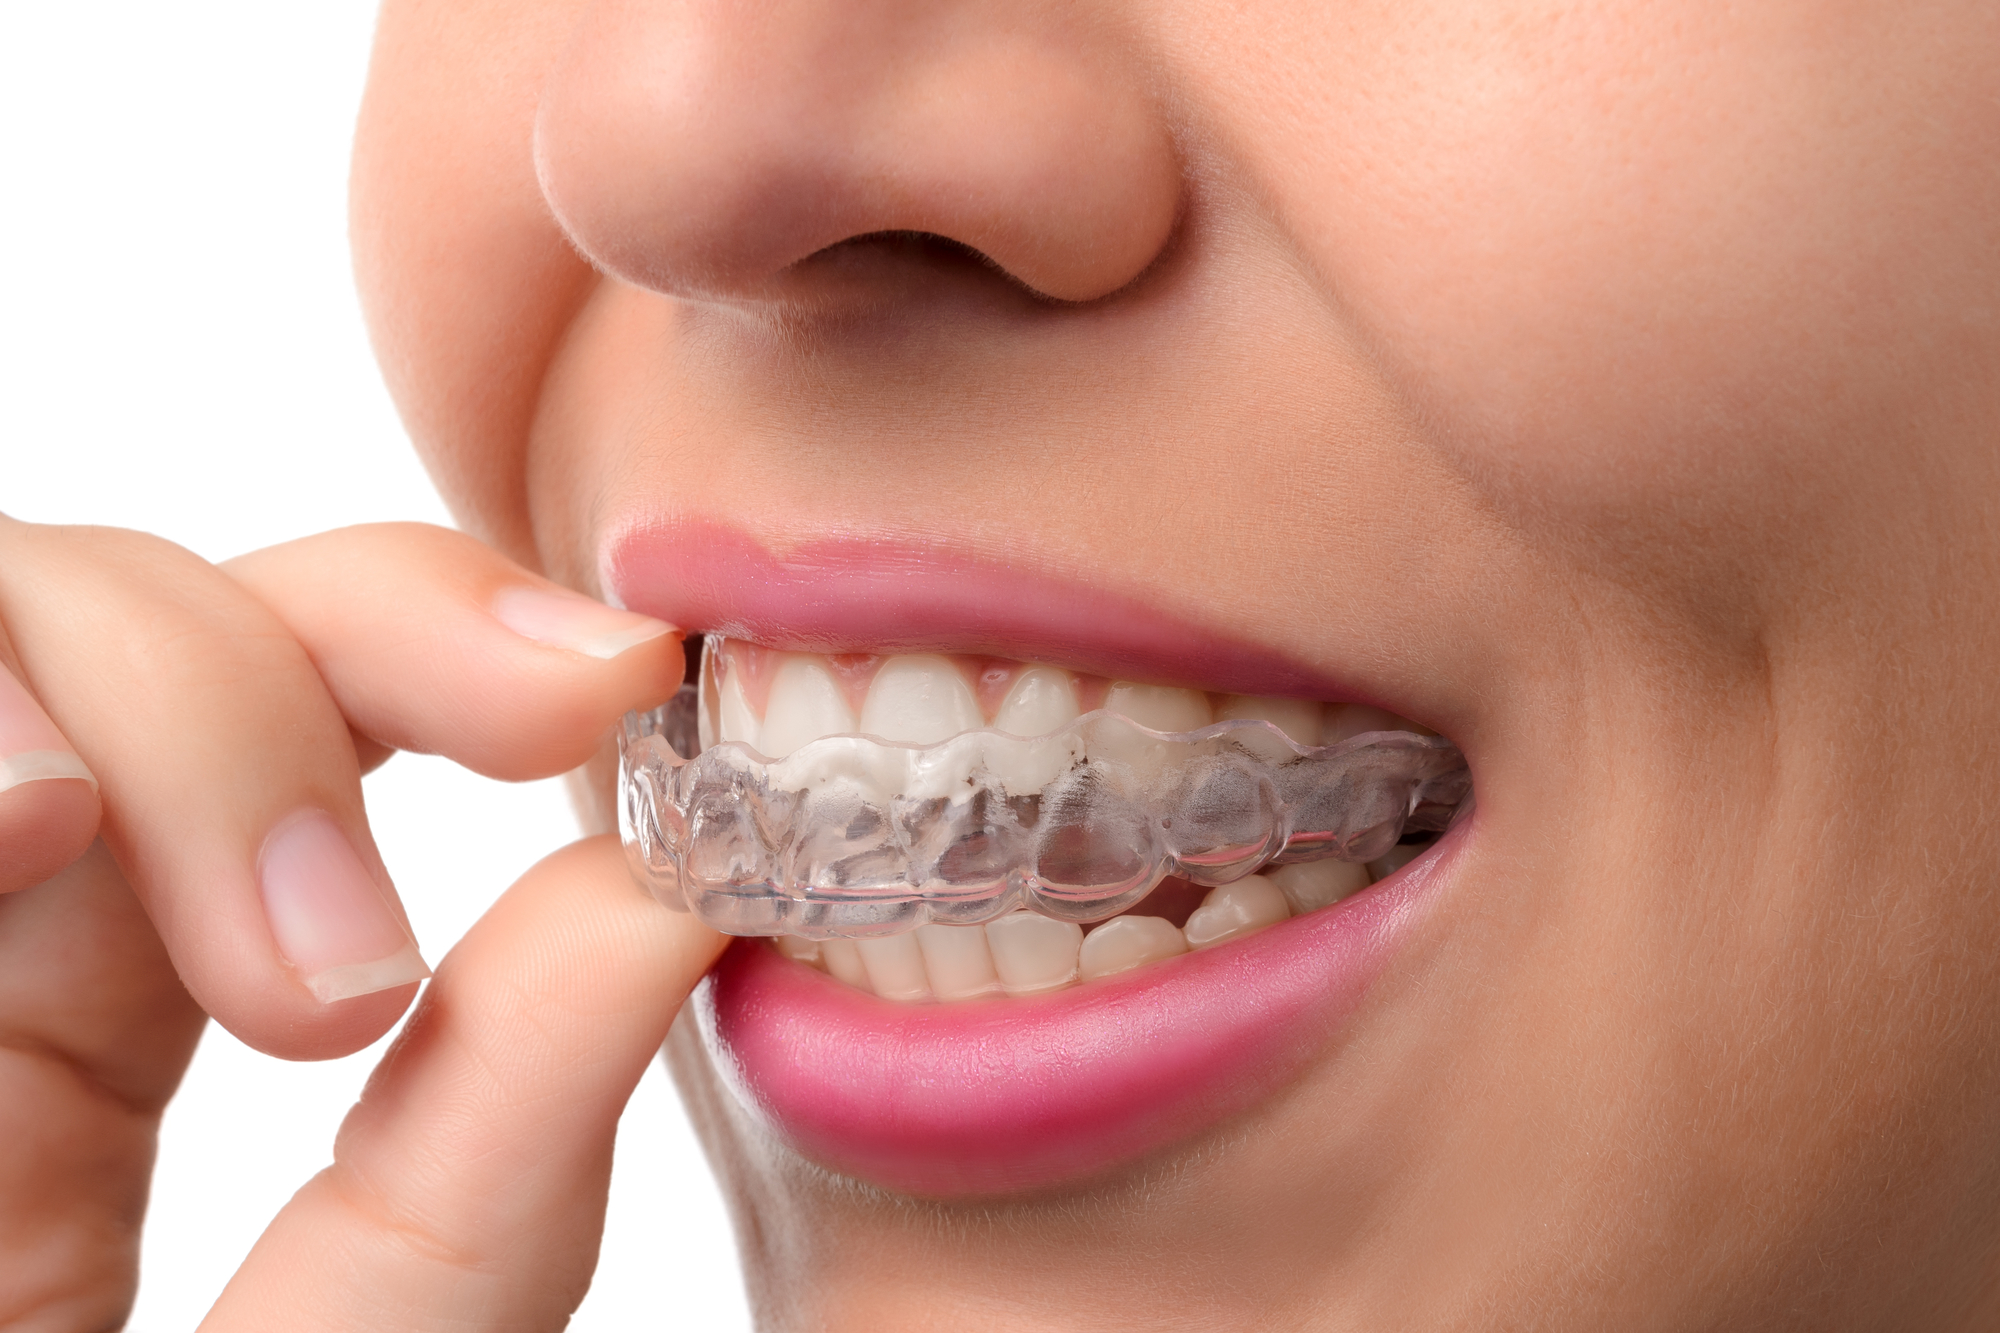 Where can I get Invisalign in Orlando?